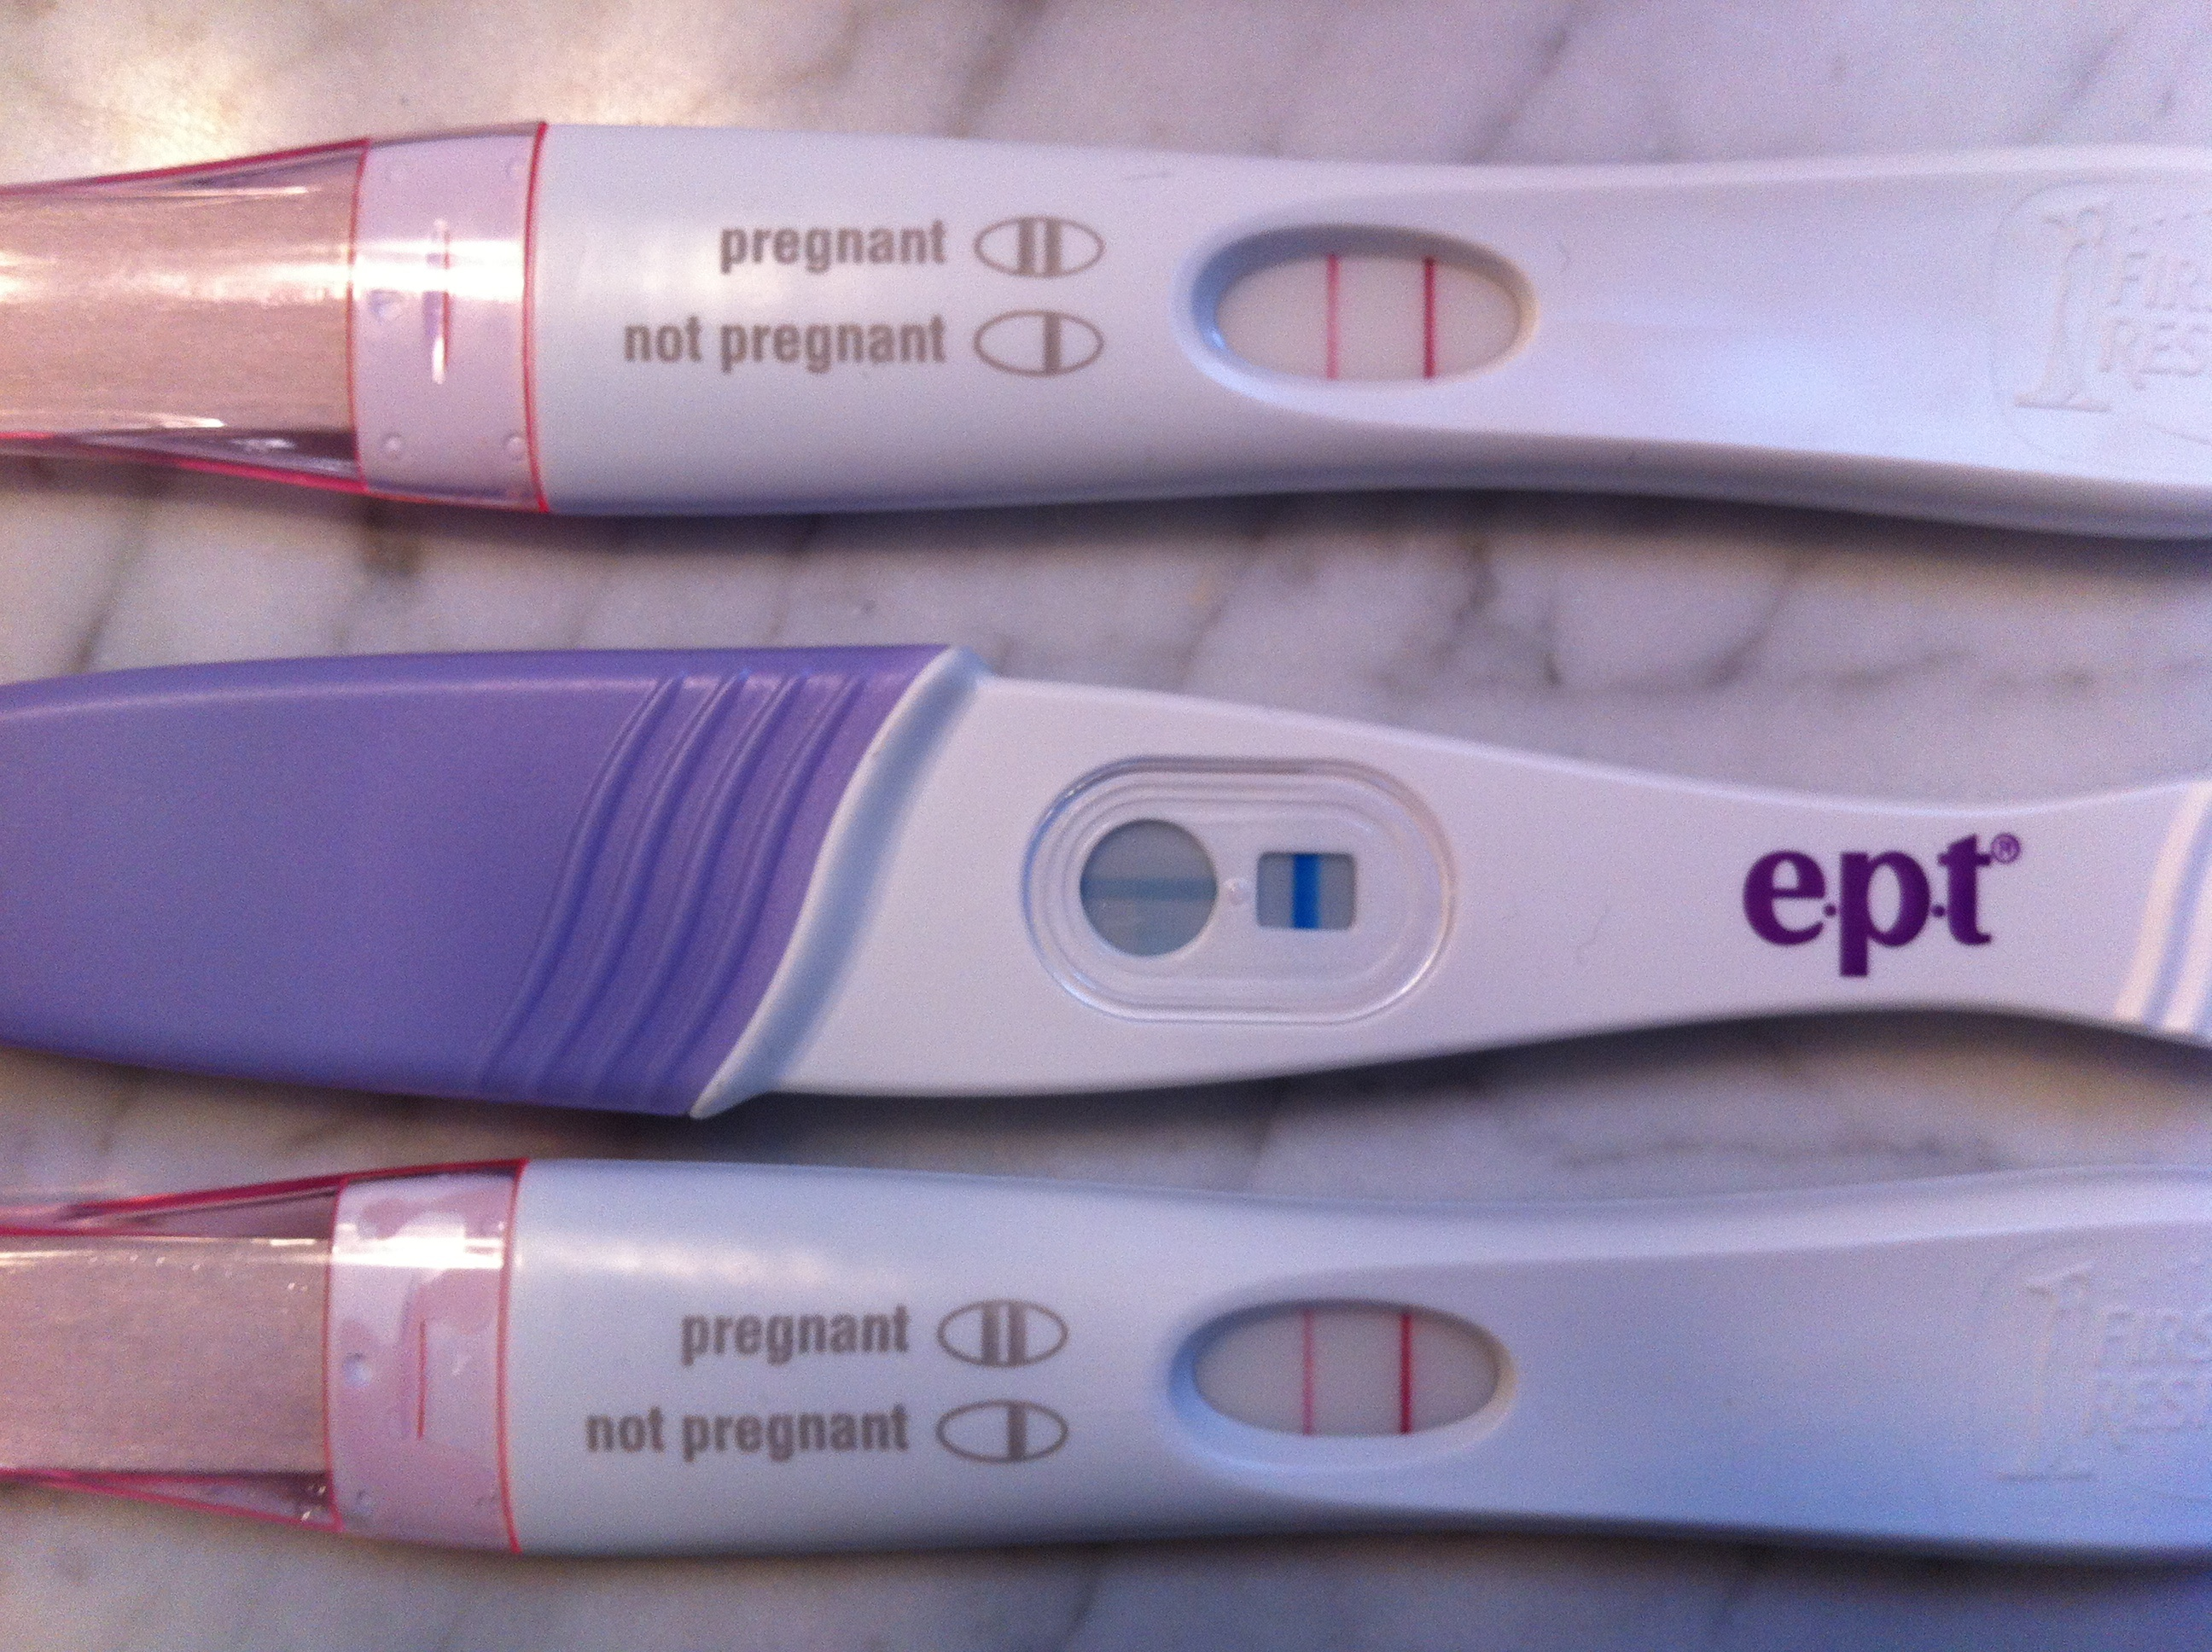 pregnancy test instructions ept